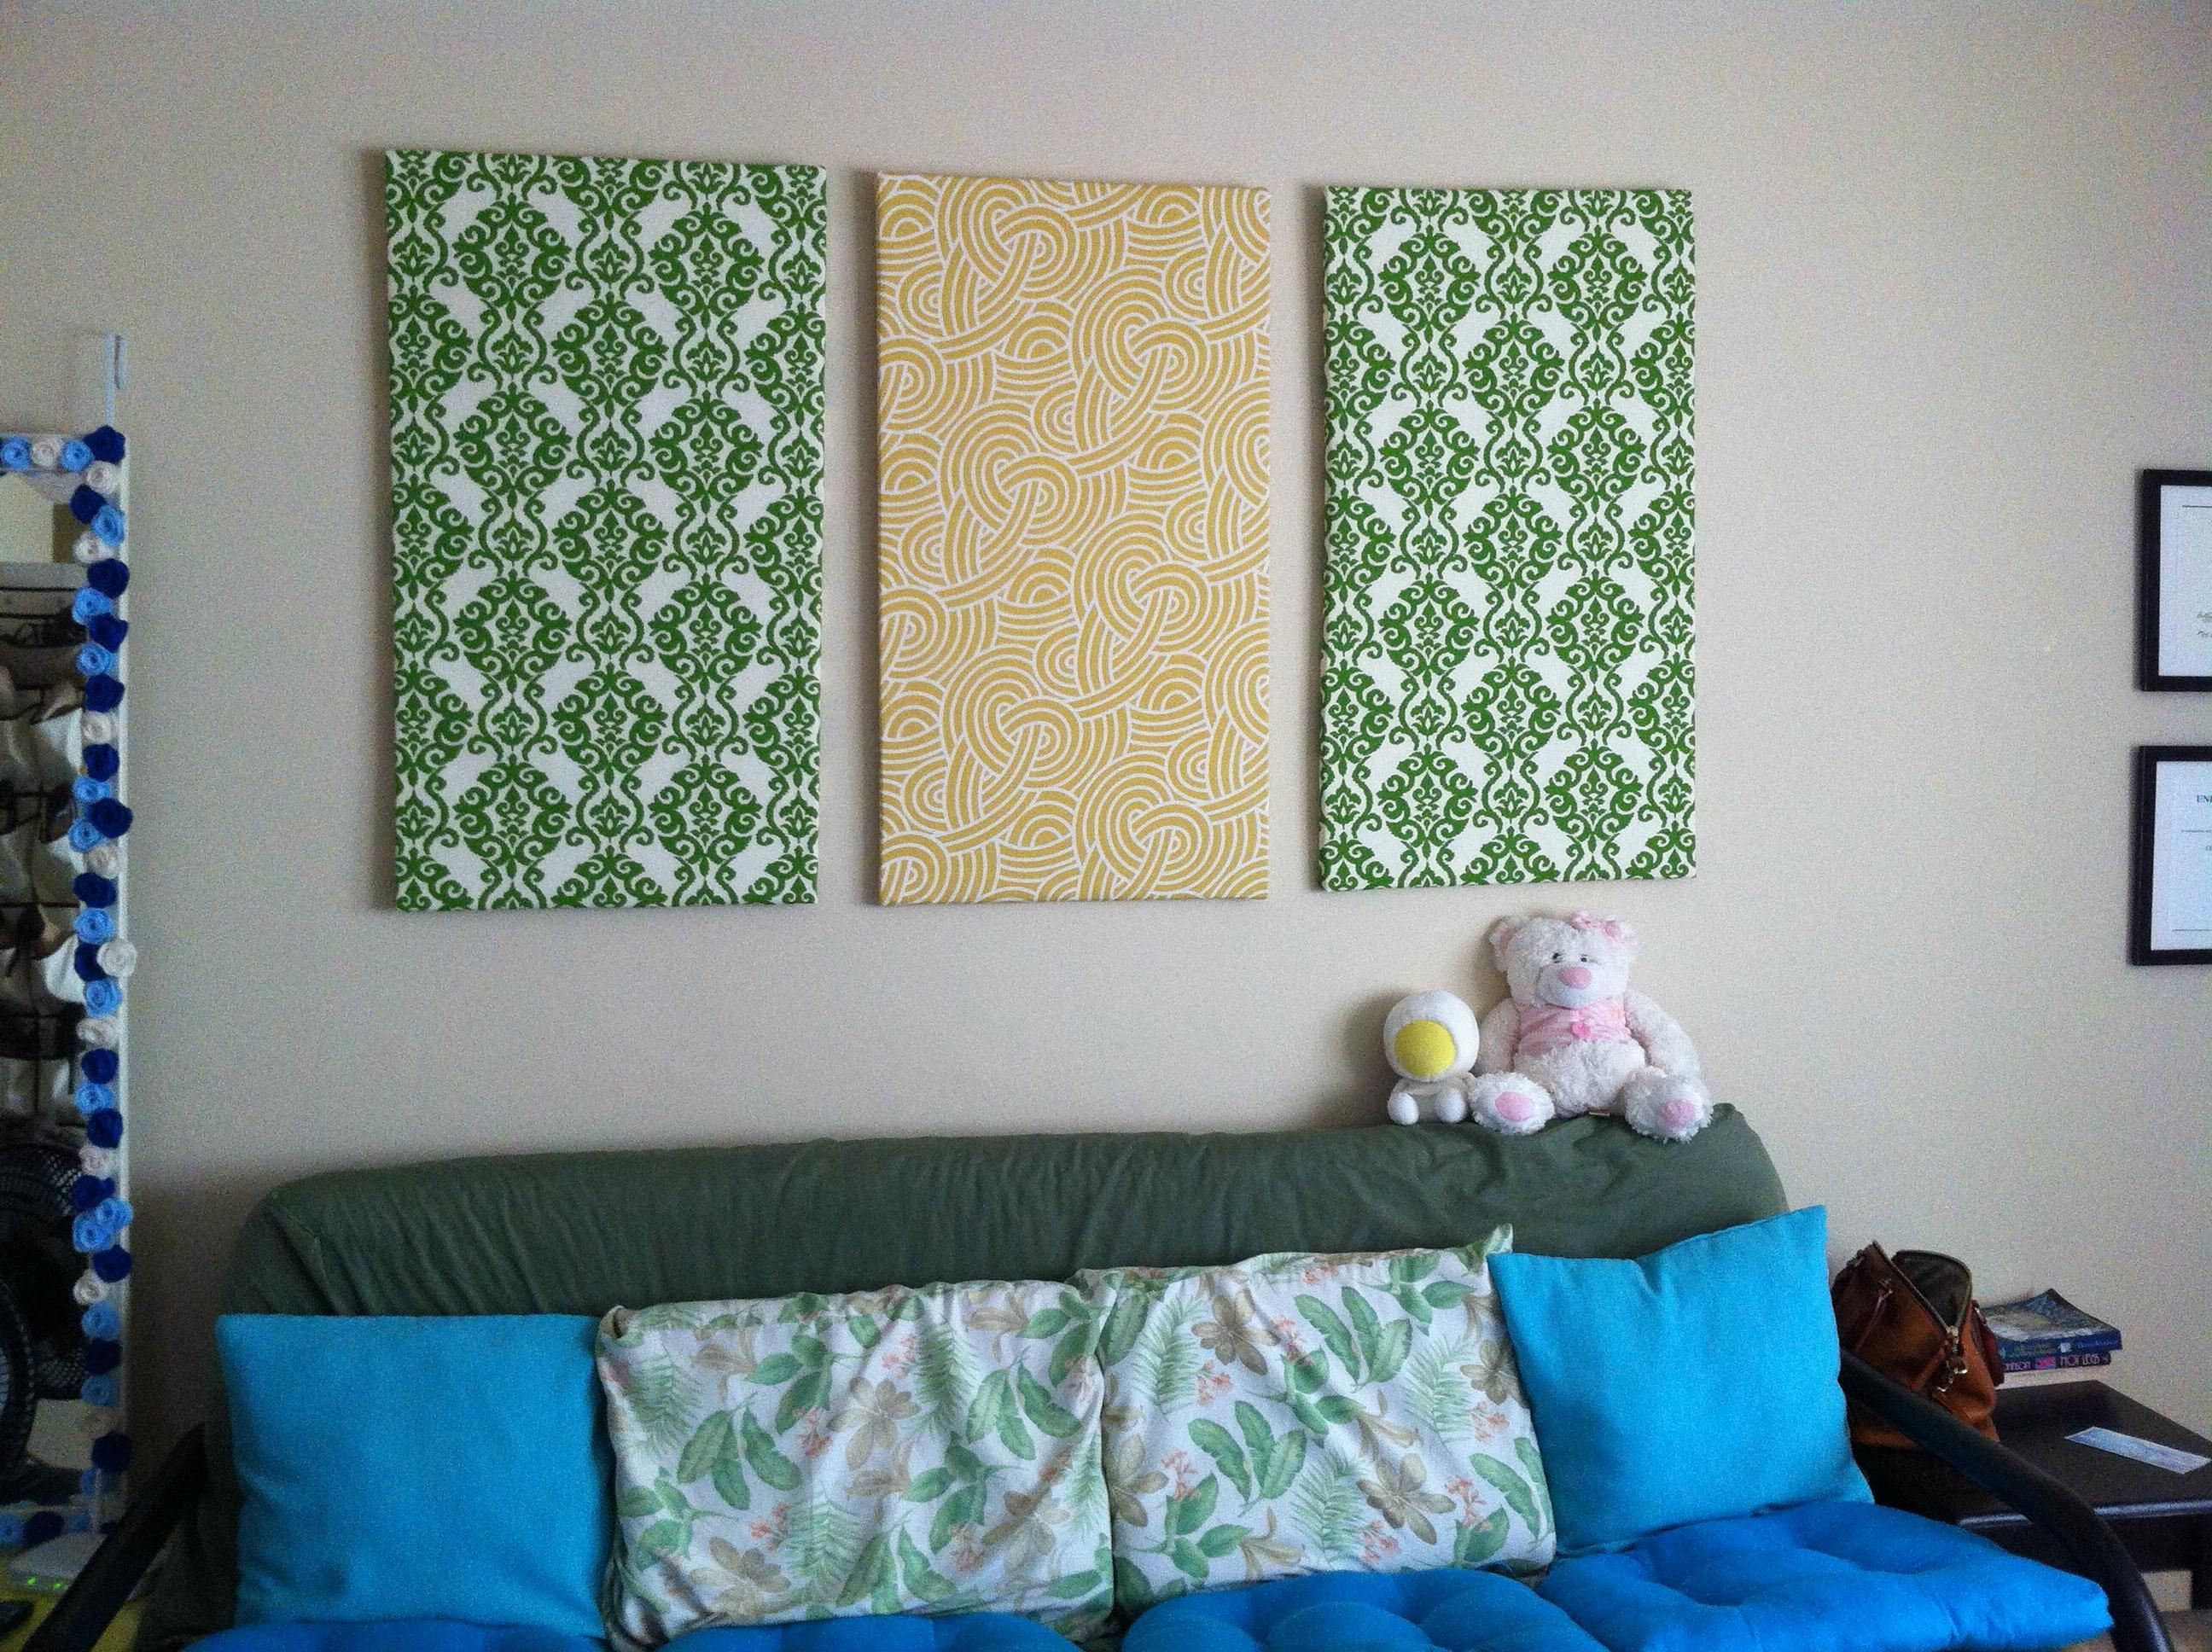 Diy Fabric Wall Art | Crafting Is Sanity Throughout Fabric Wall Art (View 11 of 20)